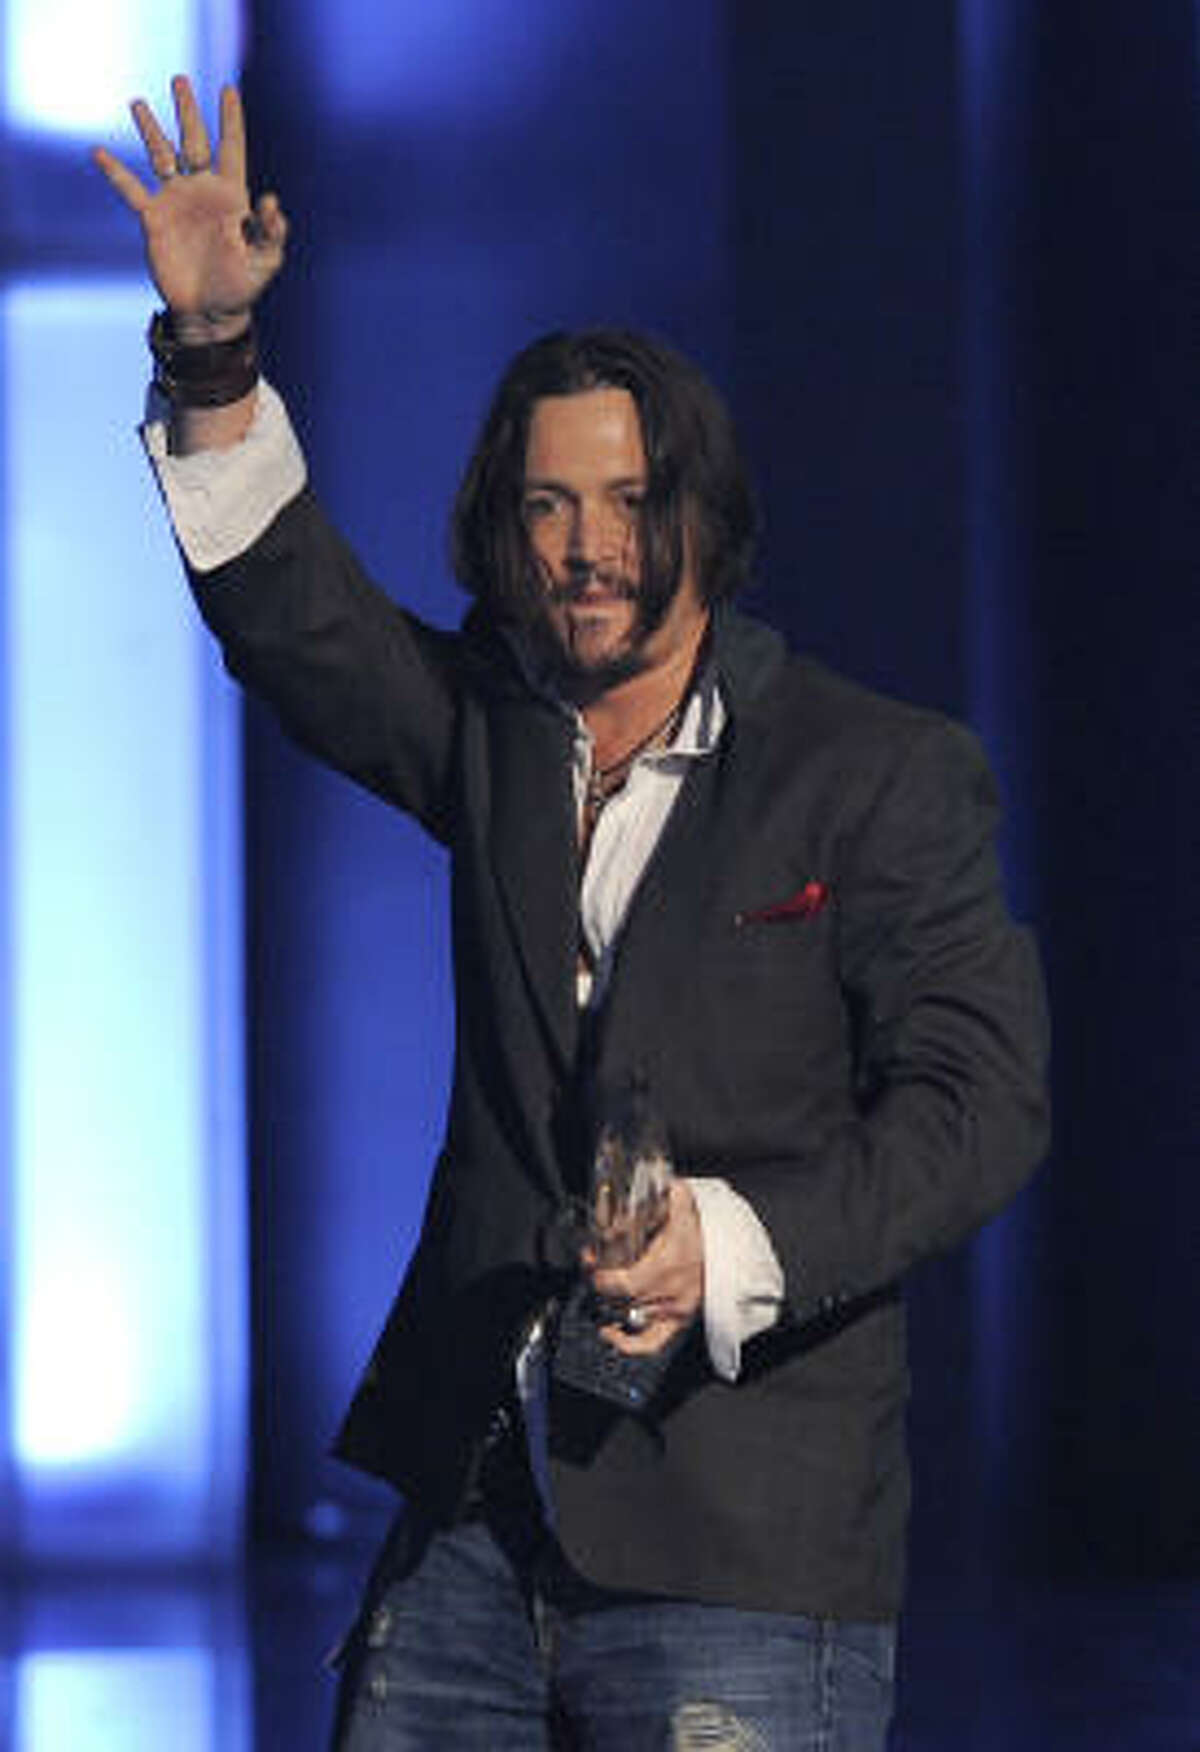 Johnny Depp accepts the award for favorite movie actor of the decade arteyett the People's Choice Awards on Wednesday Jan. 6, 2010, in Los Angeles.